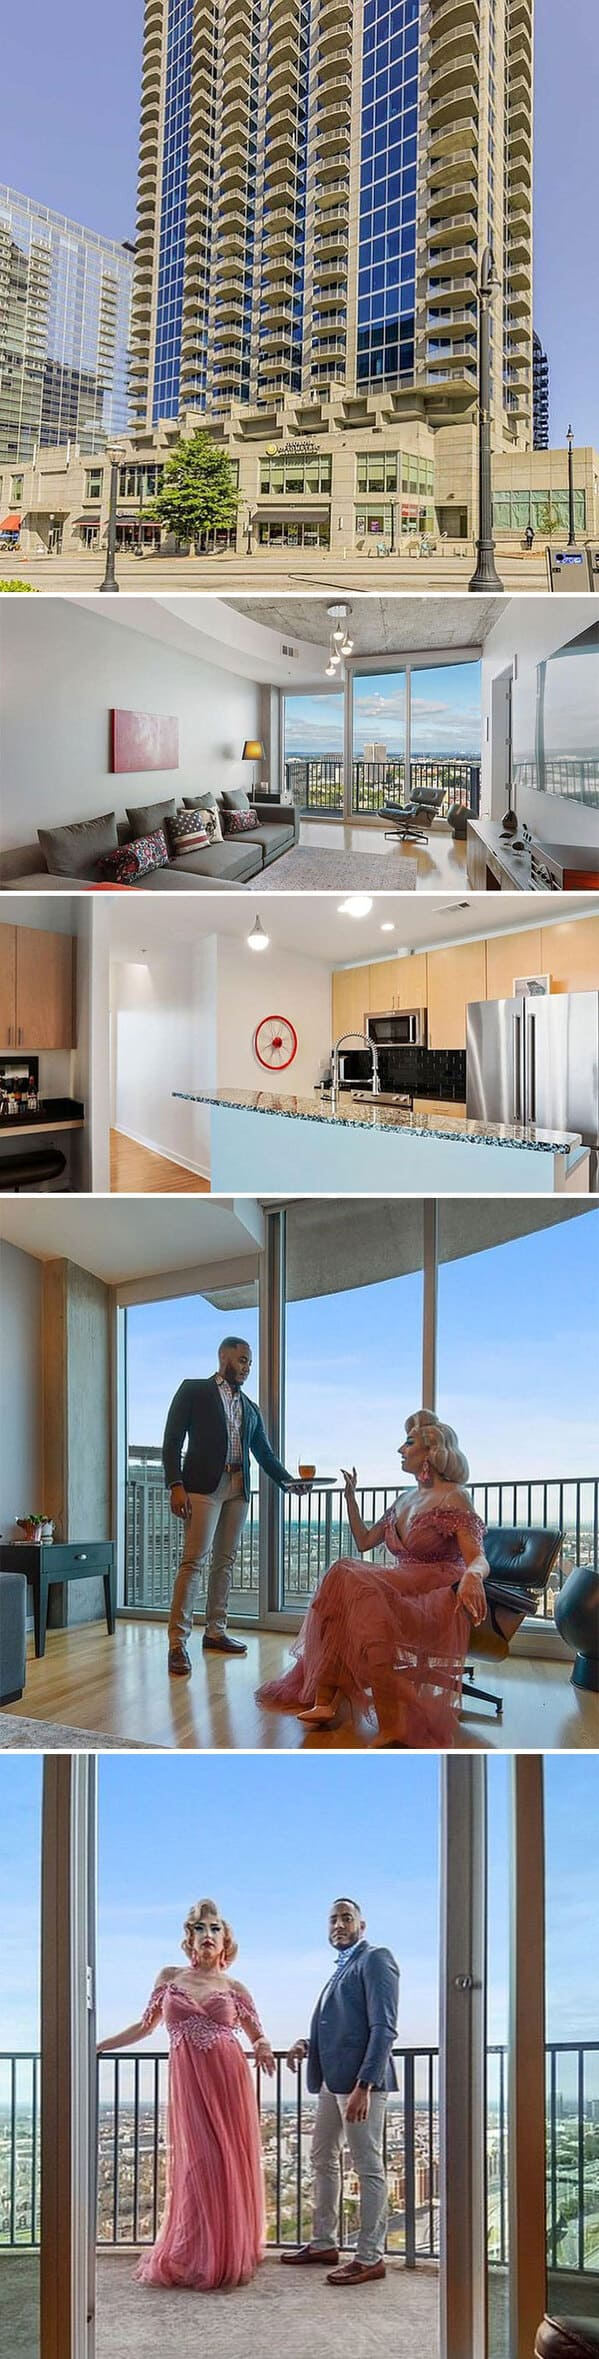 condo with couple hanging out inside it, Zillow gone wild, weird and funny real estate listings, real estate agents who did extra, lol, funny pics of houses, ridiculous houses to buy, zillowgonewild, instagram, humor, funny pics